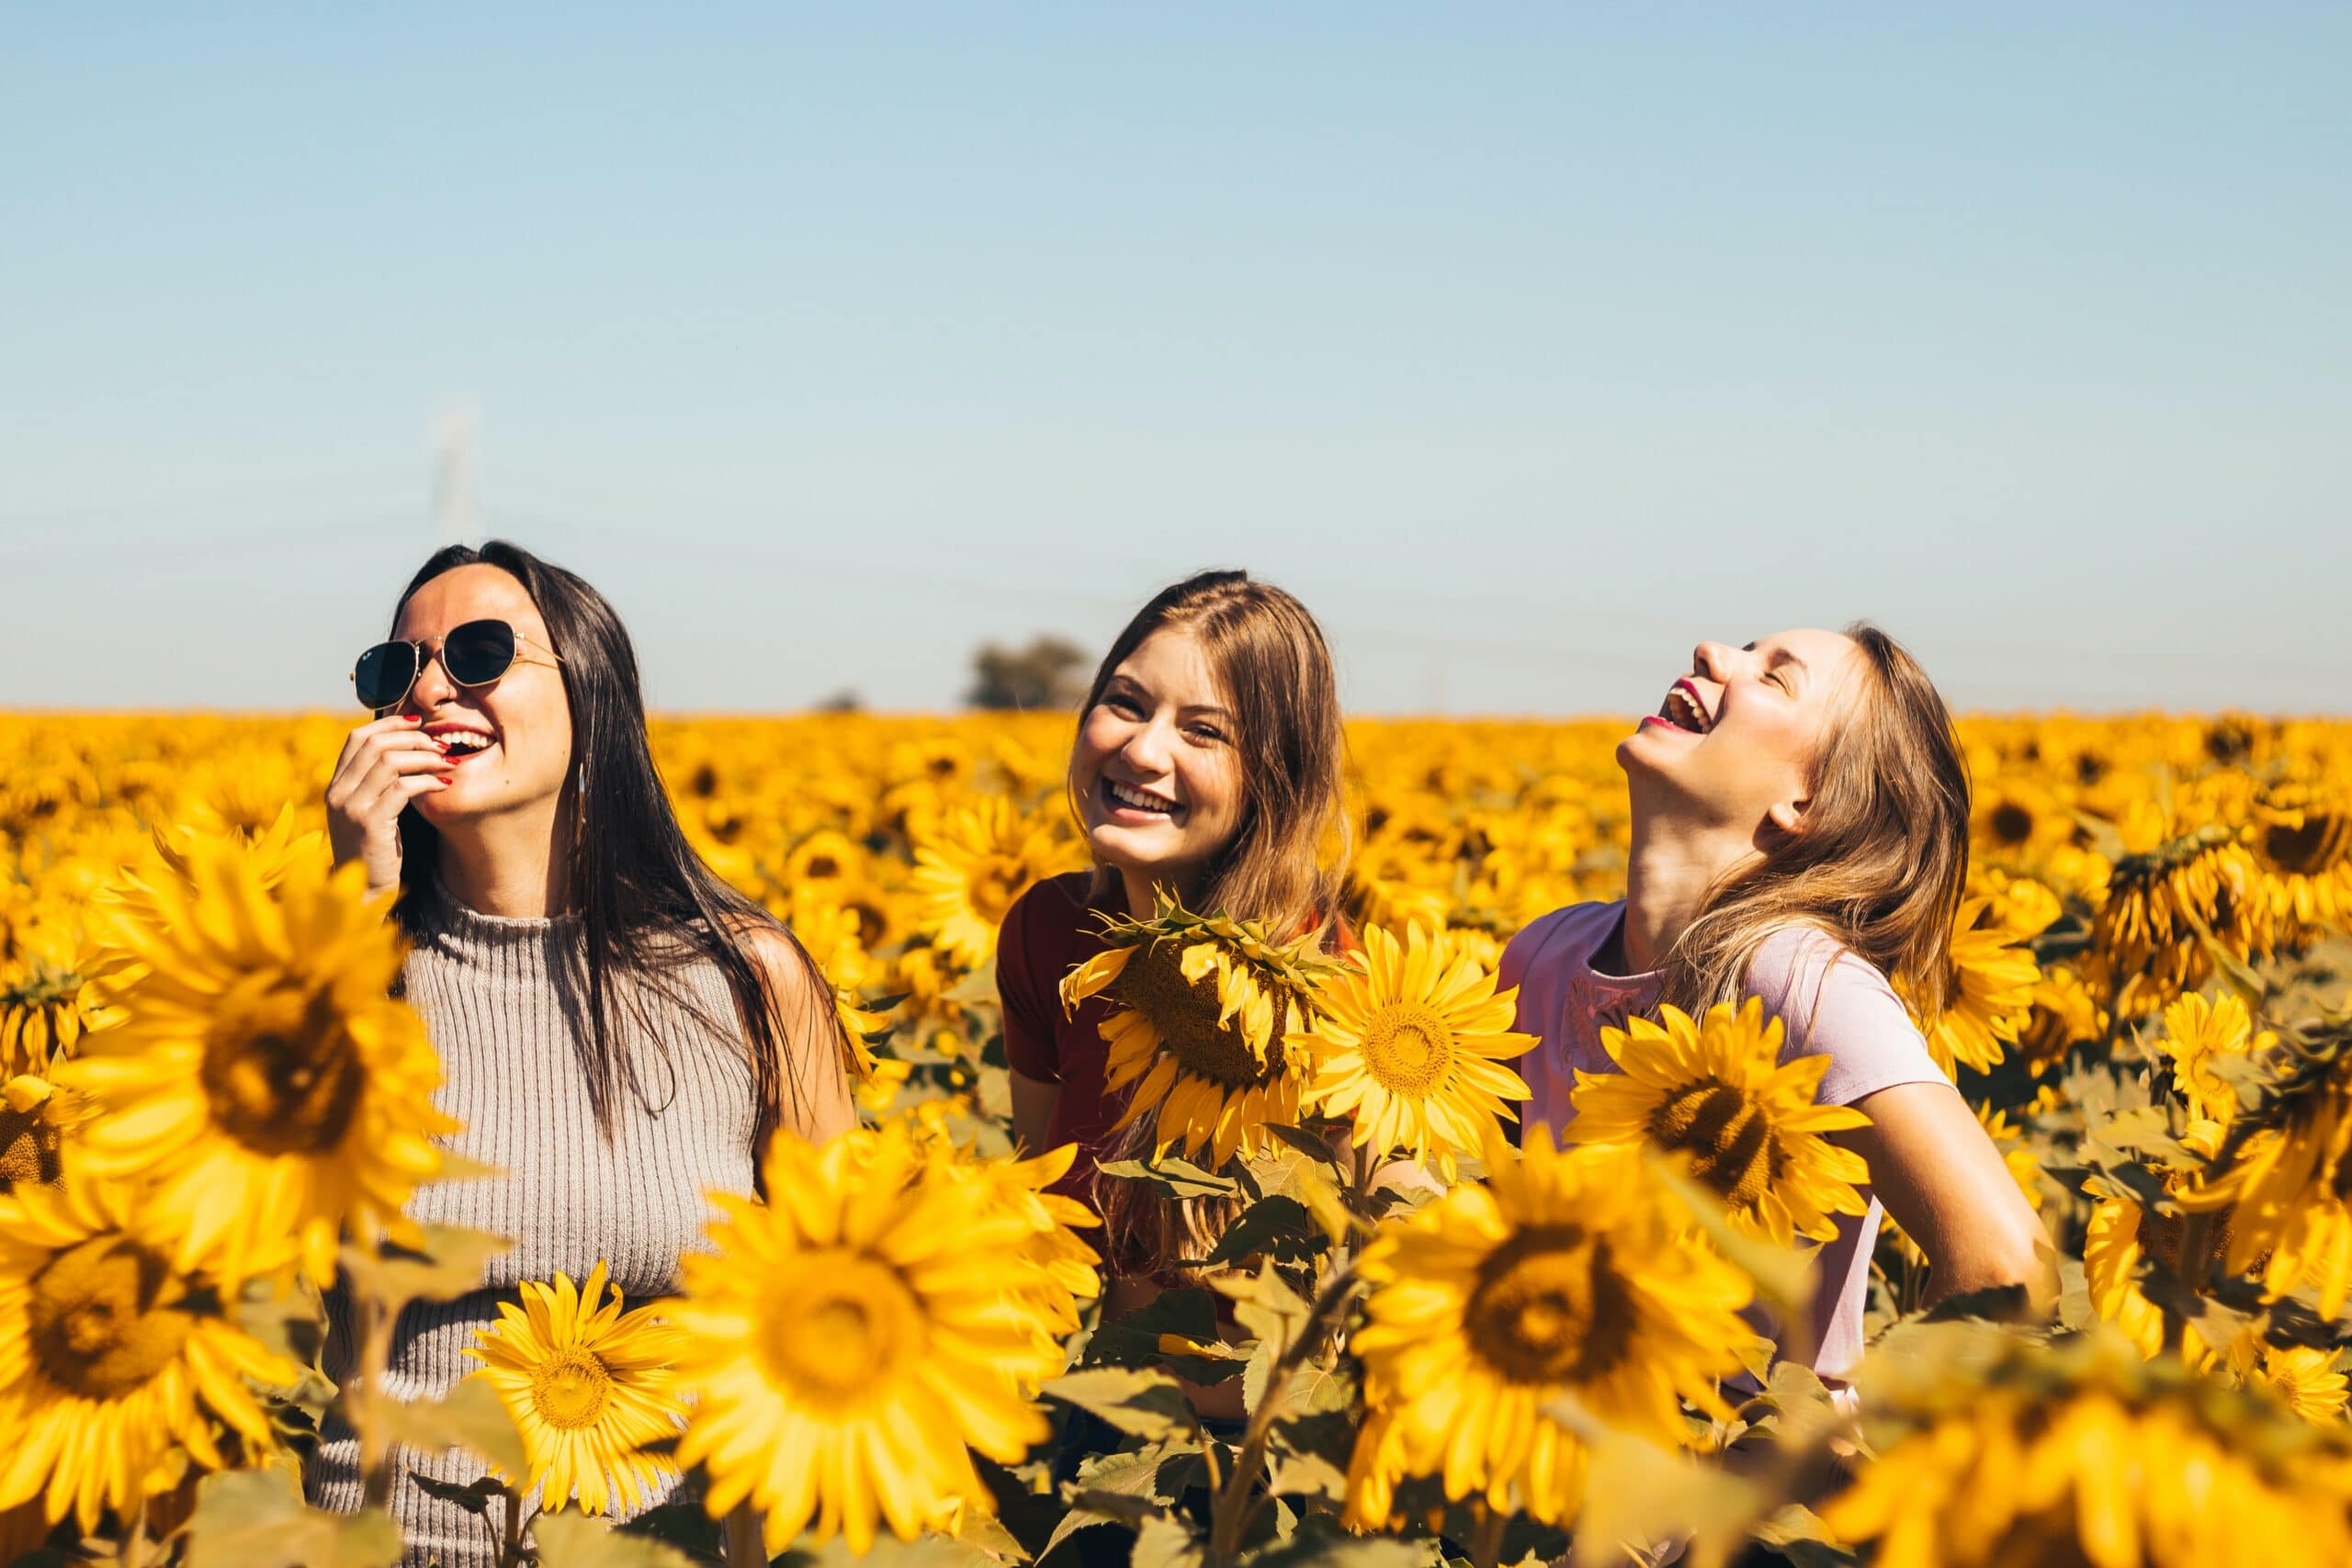 three woman laughing in sunflowers field